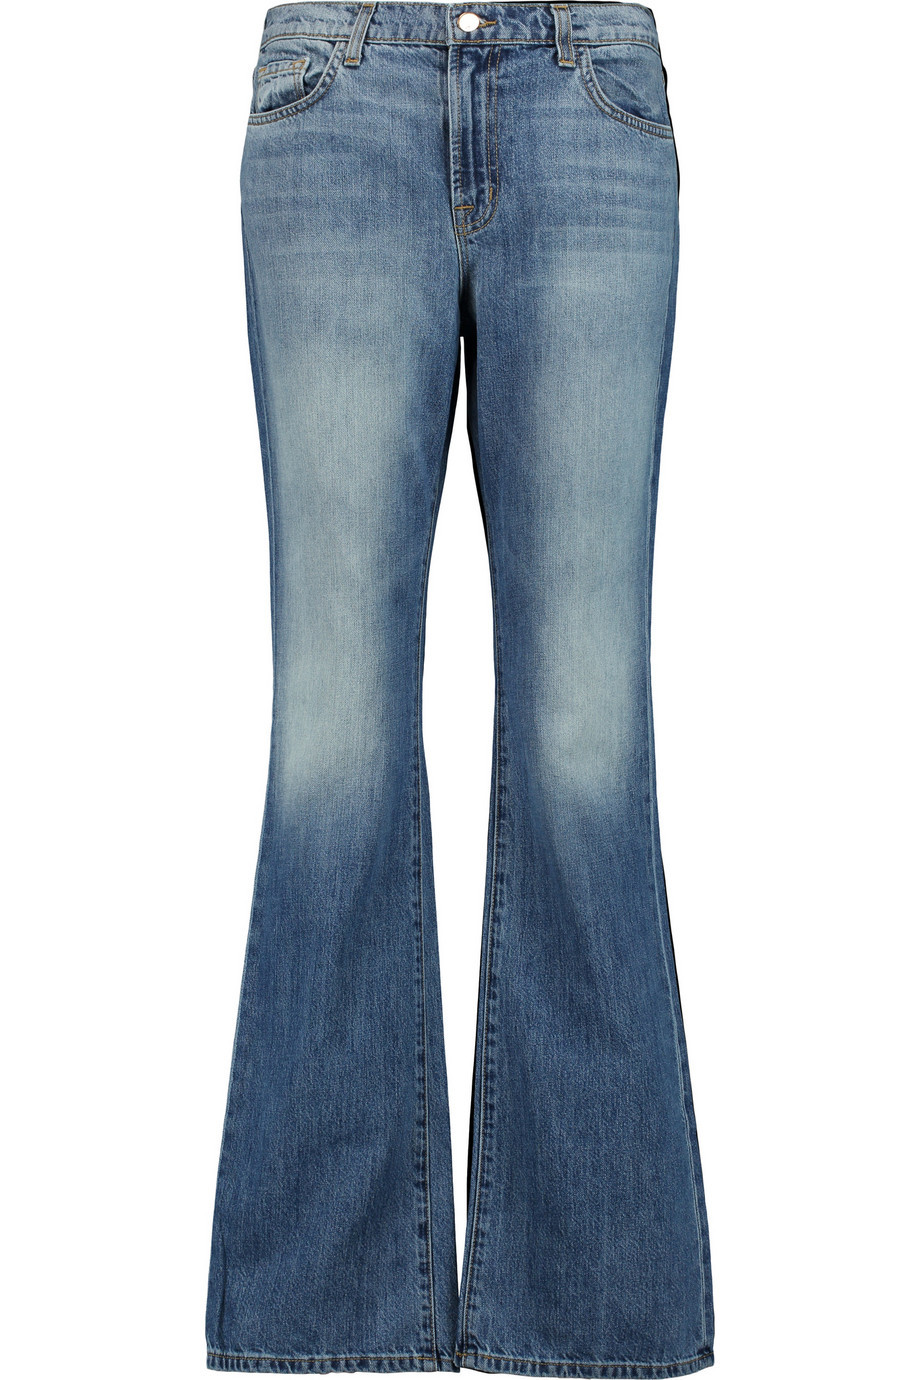 Sabine High Rise Flared Jeans Mid Denim - style: flares; length: standard; pattern: plain; pocket detail: traditional 5 pocket; waist: mid/regular rise; predominant colour: denim; occasions: casual; fibres: cotton - stretch; jeans detail: whiskering, washed/faded; texture group: denim; pattern type: fabric; season: s/s 2016; wardrobe: basic